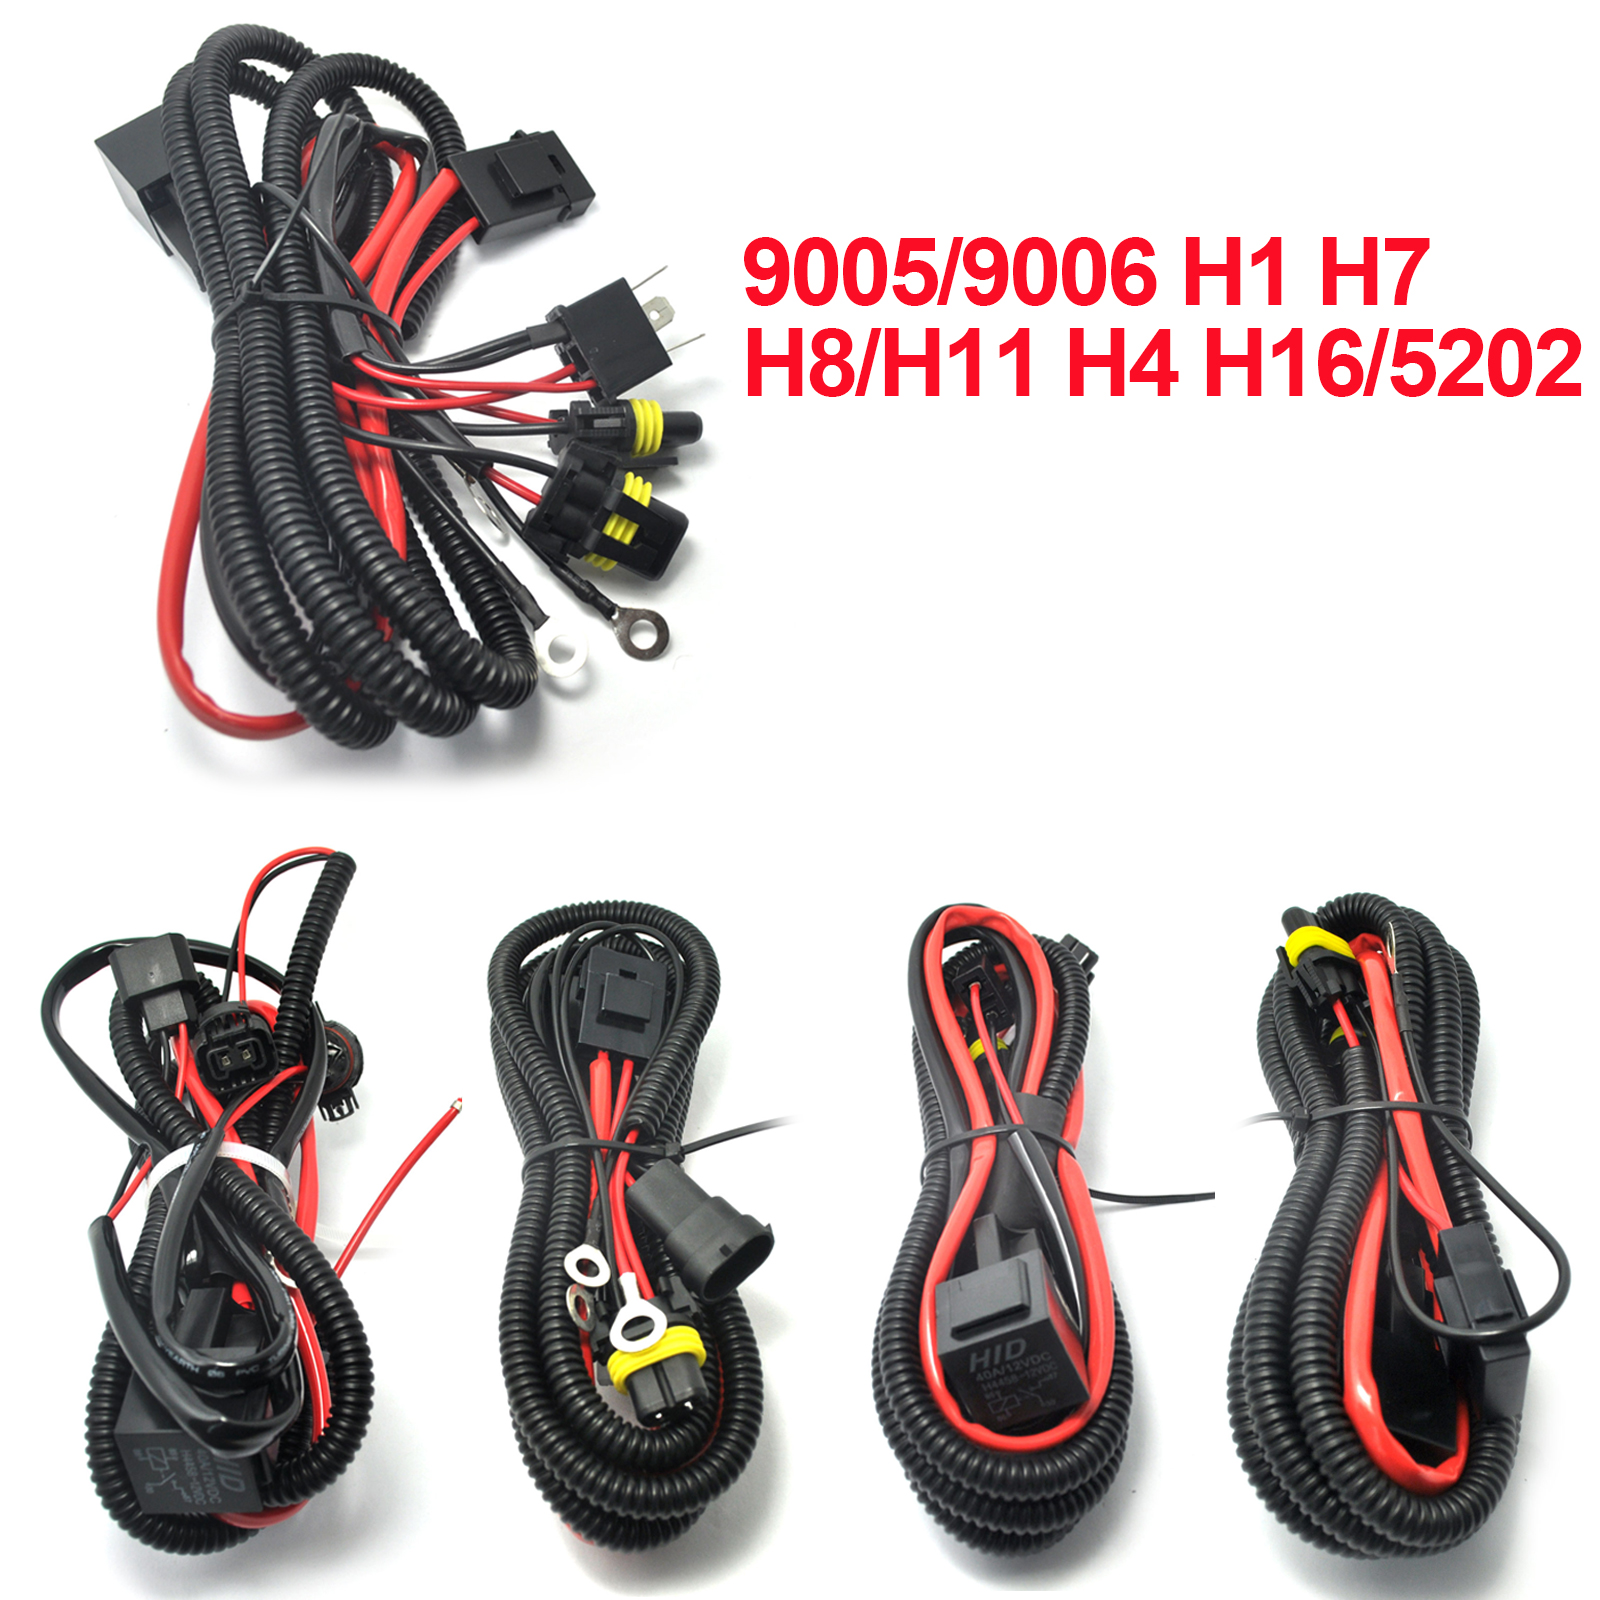 Buy Hid Harness And Get Free Shipping On Wiring